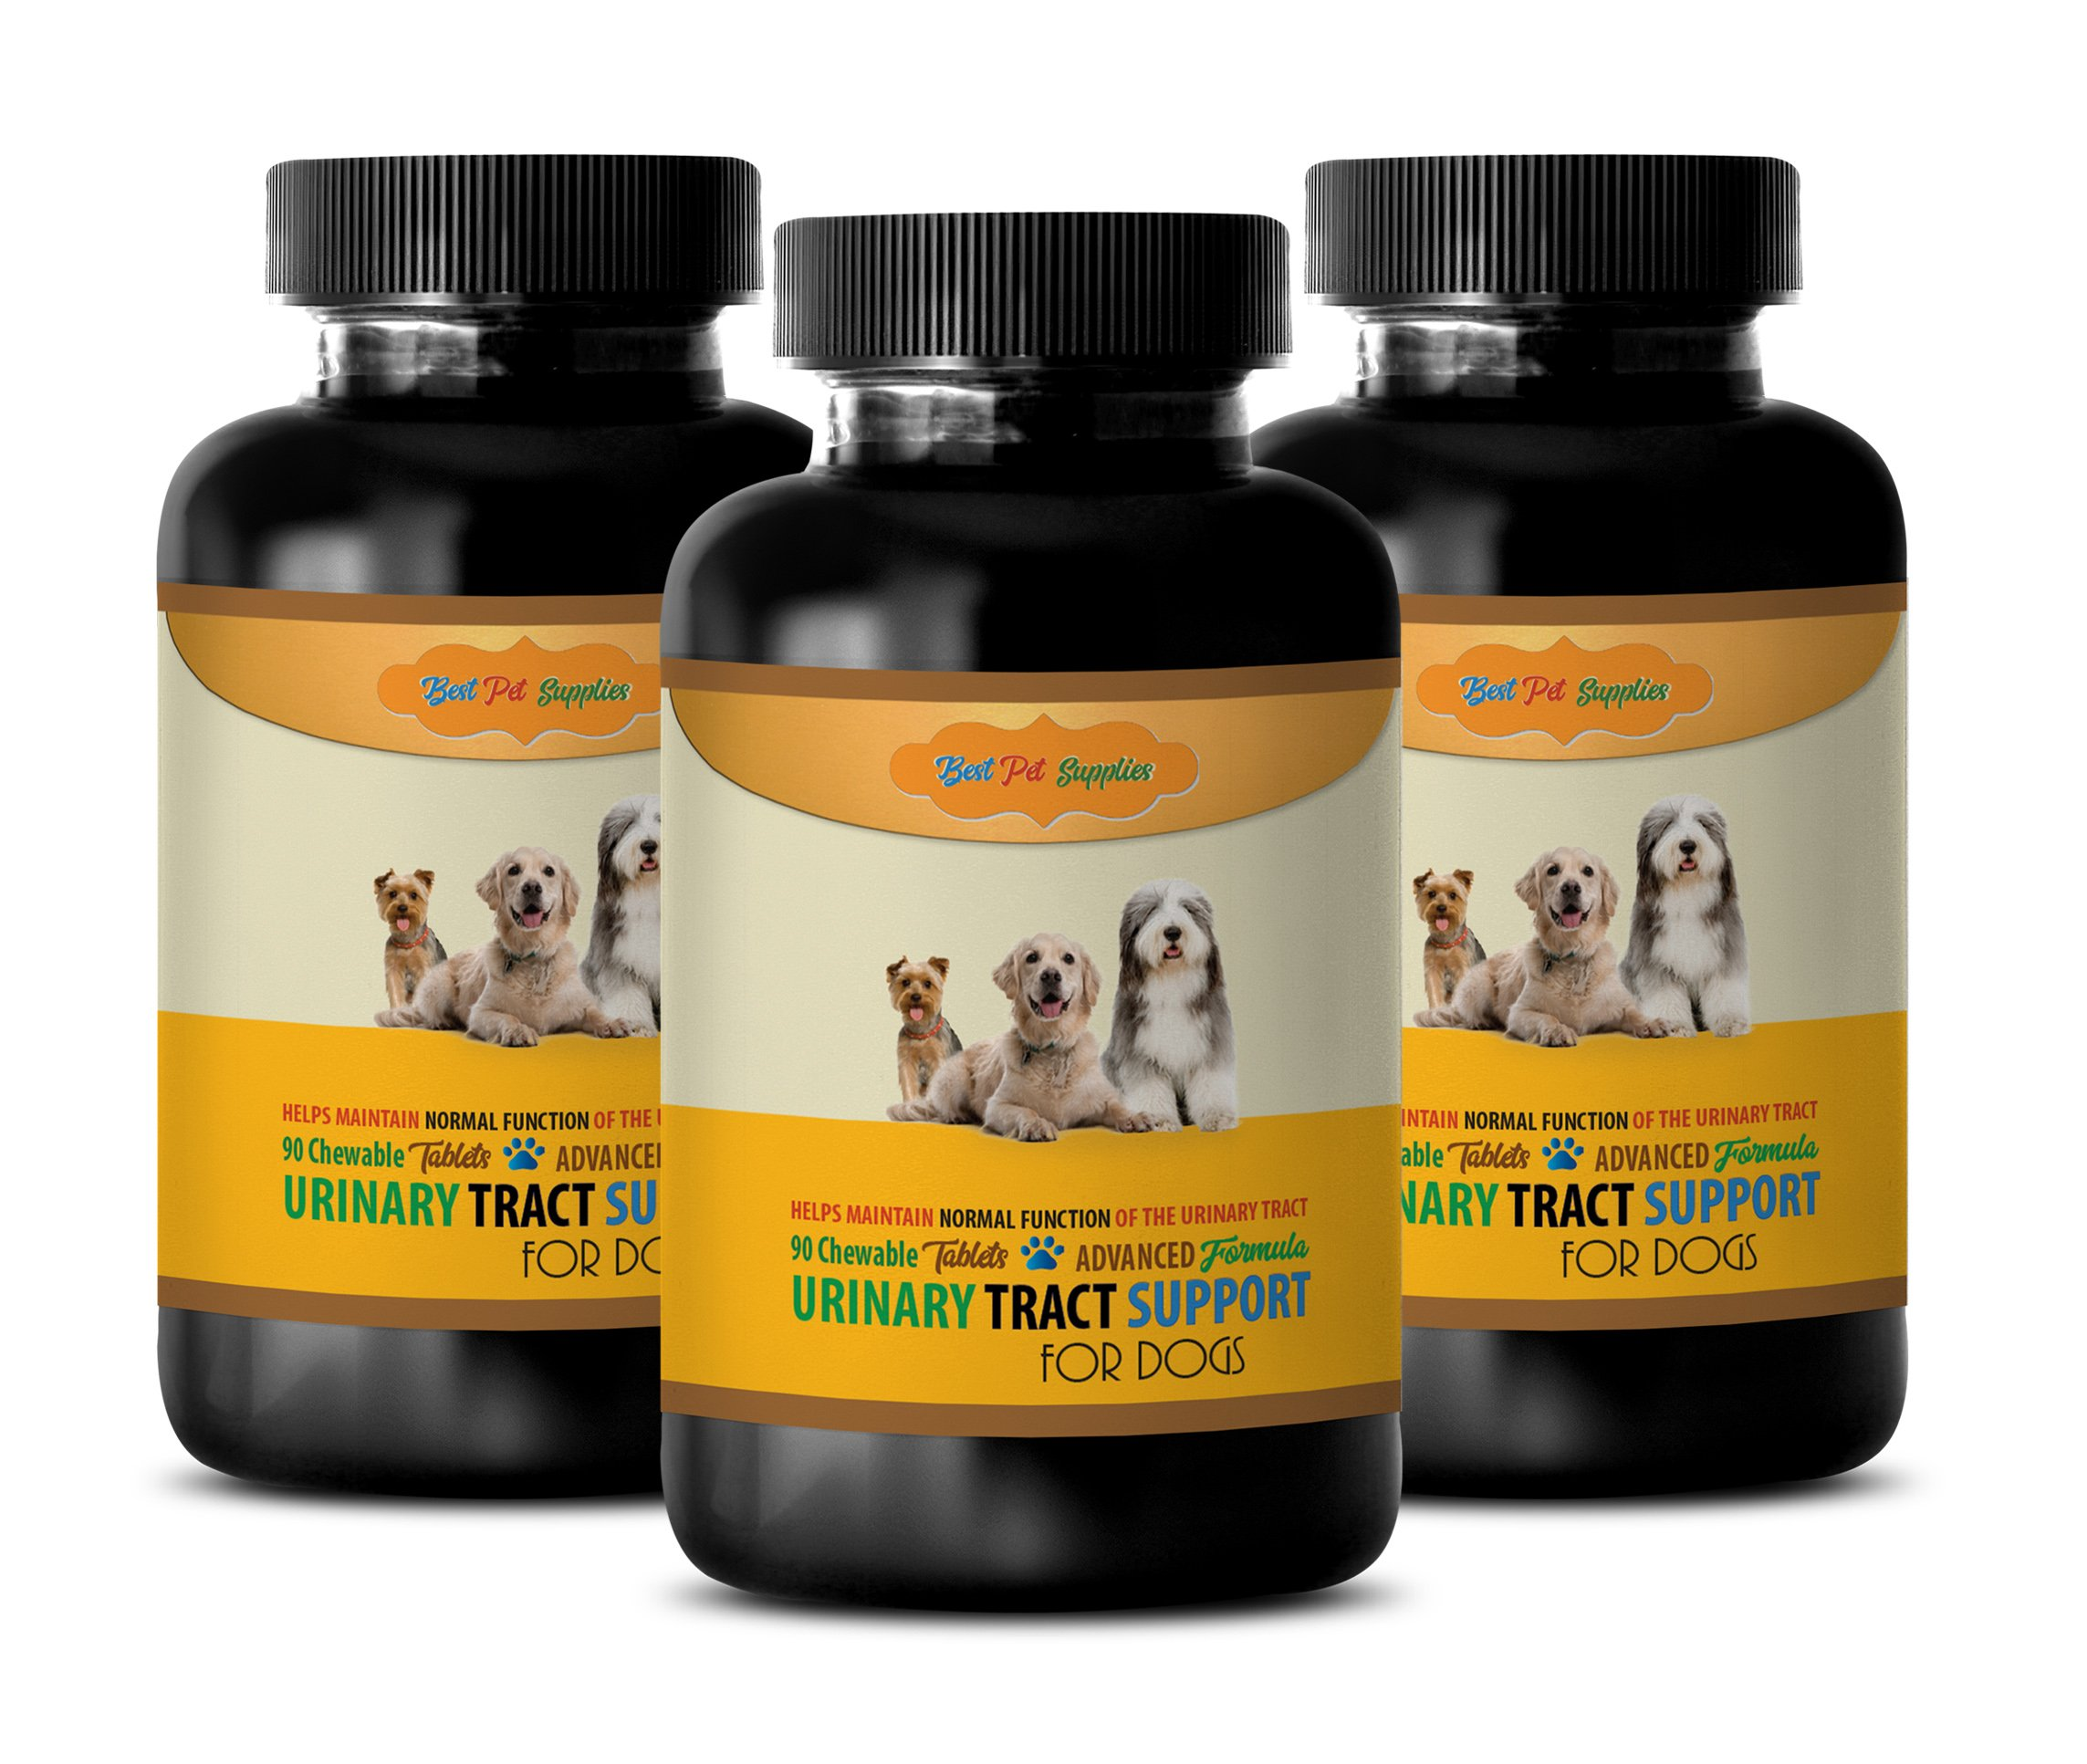 BEST PET SUPPLIES LLC dog bladder infection - ADVANCED URINARY TRACT SUPPORT - FOR DOGS - CHEWABLE - POWERFUL DOG FORMULA - dog urinary support - 270 Chews (3 Bottle) by BEST PET SUPPLIES LLC